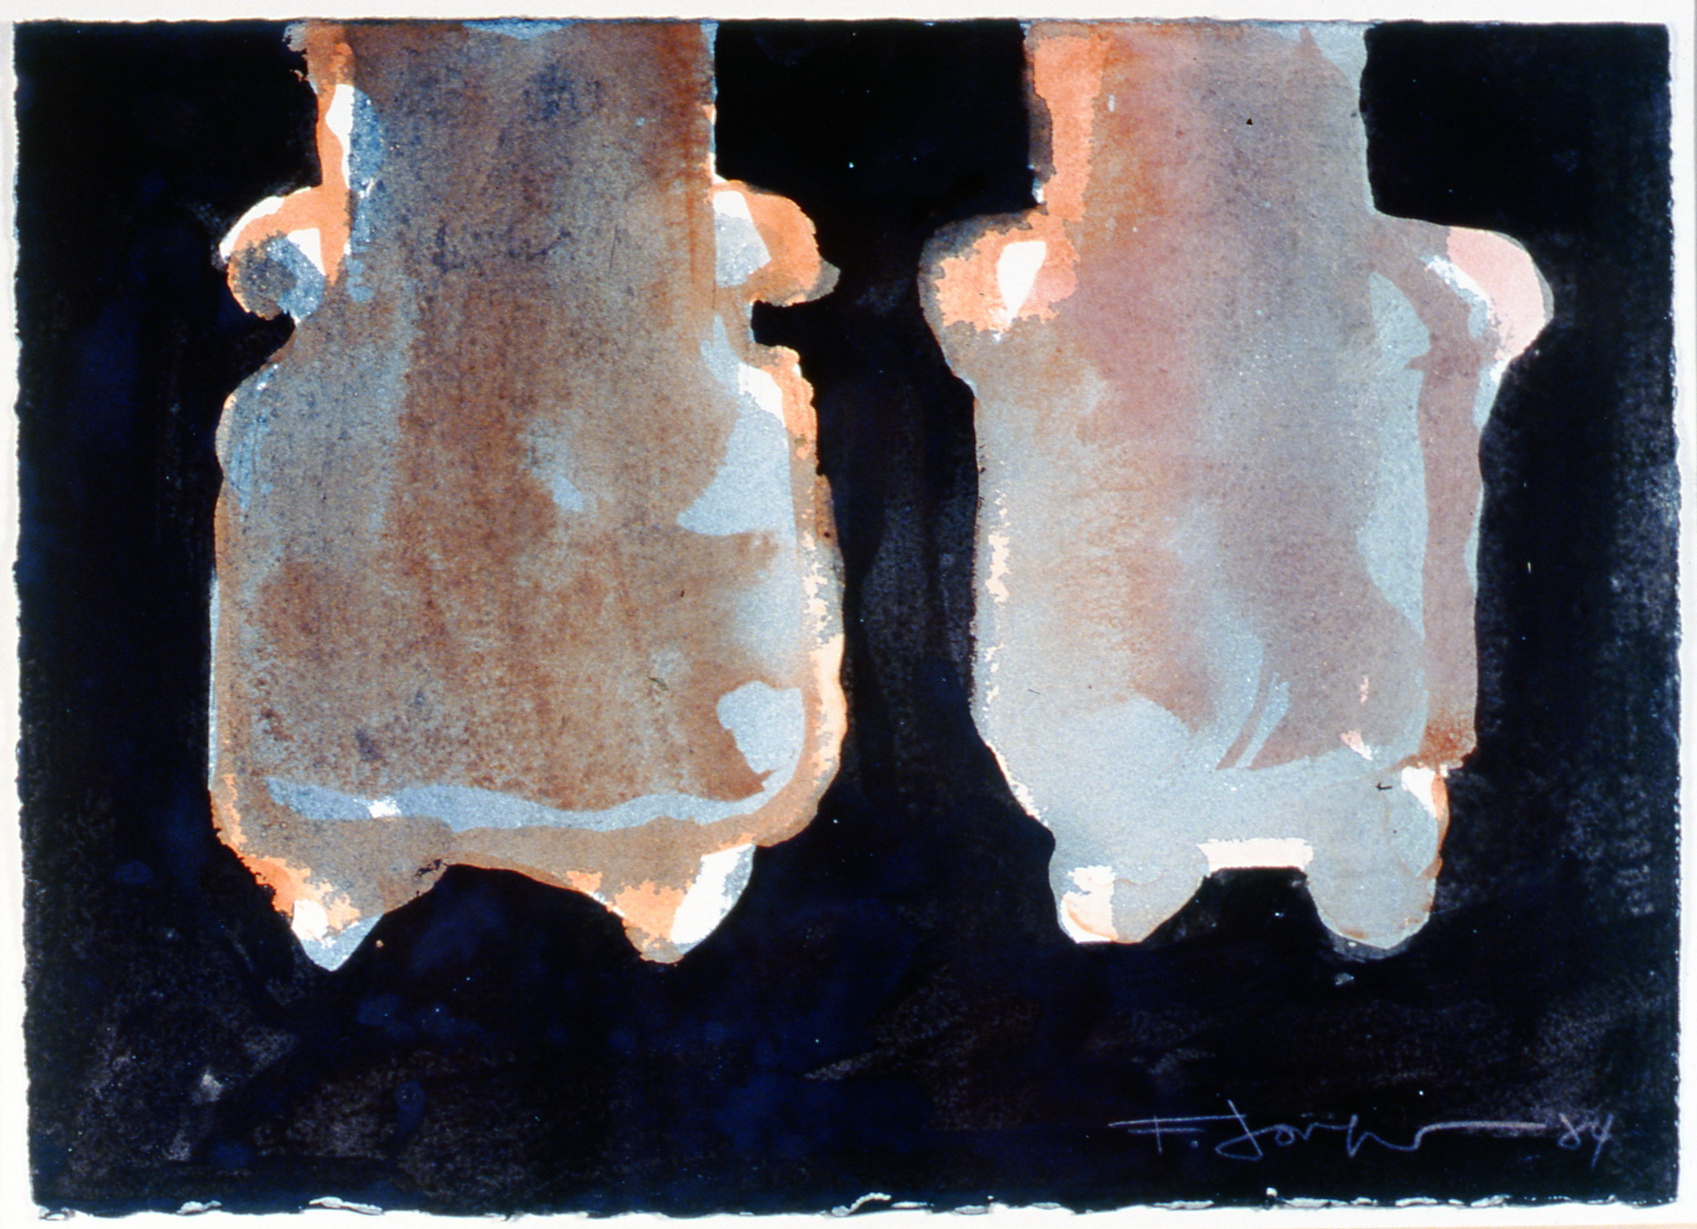 """Still Life, Black & White (Vases with Feet) , 1984, watercolour and ink on paper, 15"""" x 12"""", 2003.06.04, gift of Mrs. Rosita Tovell"""